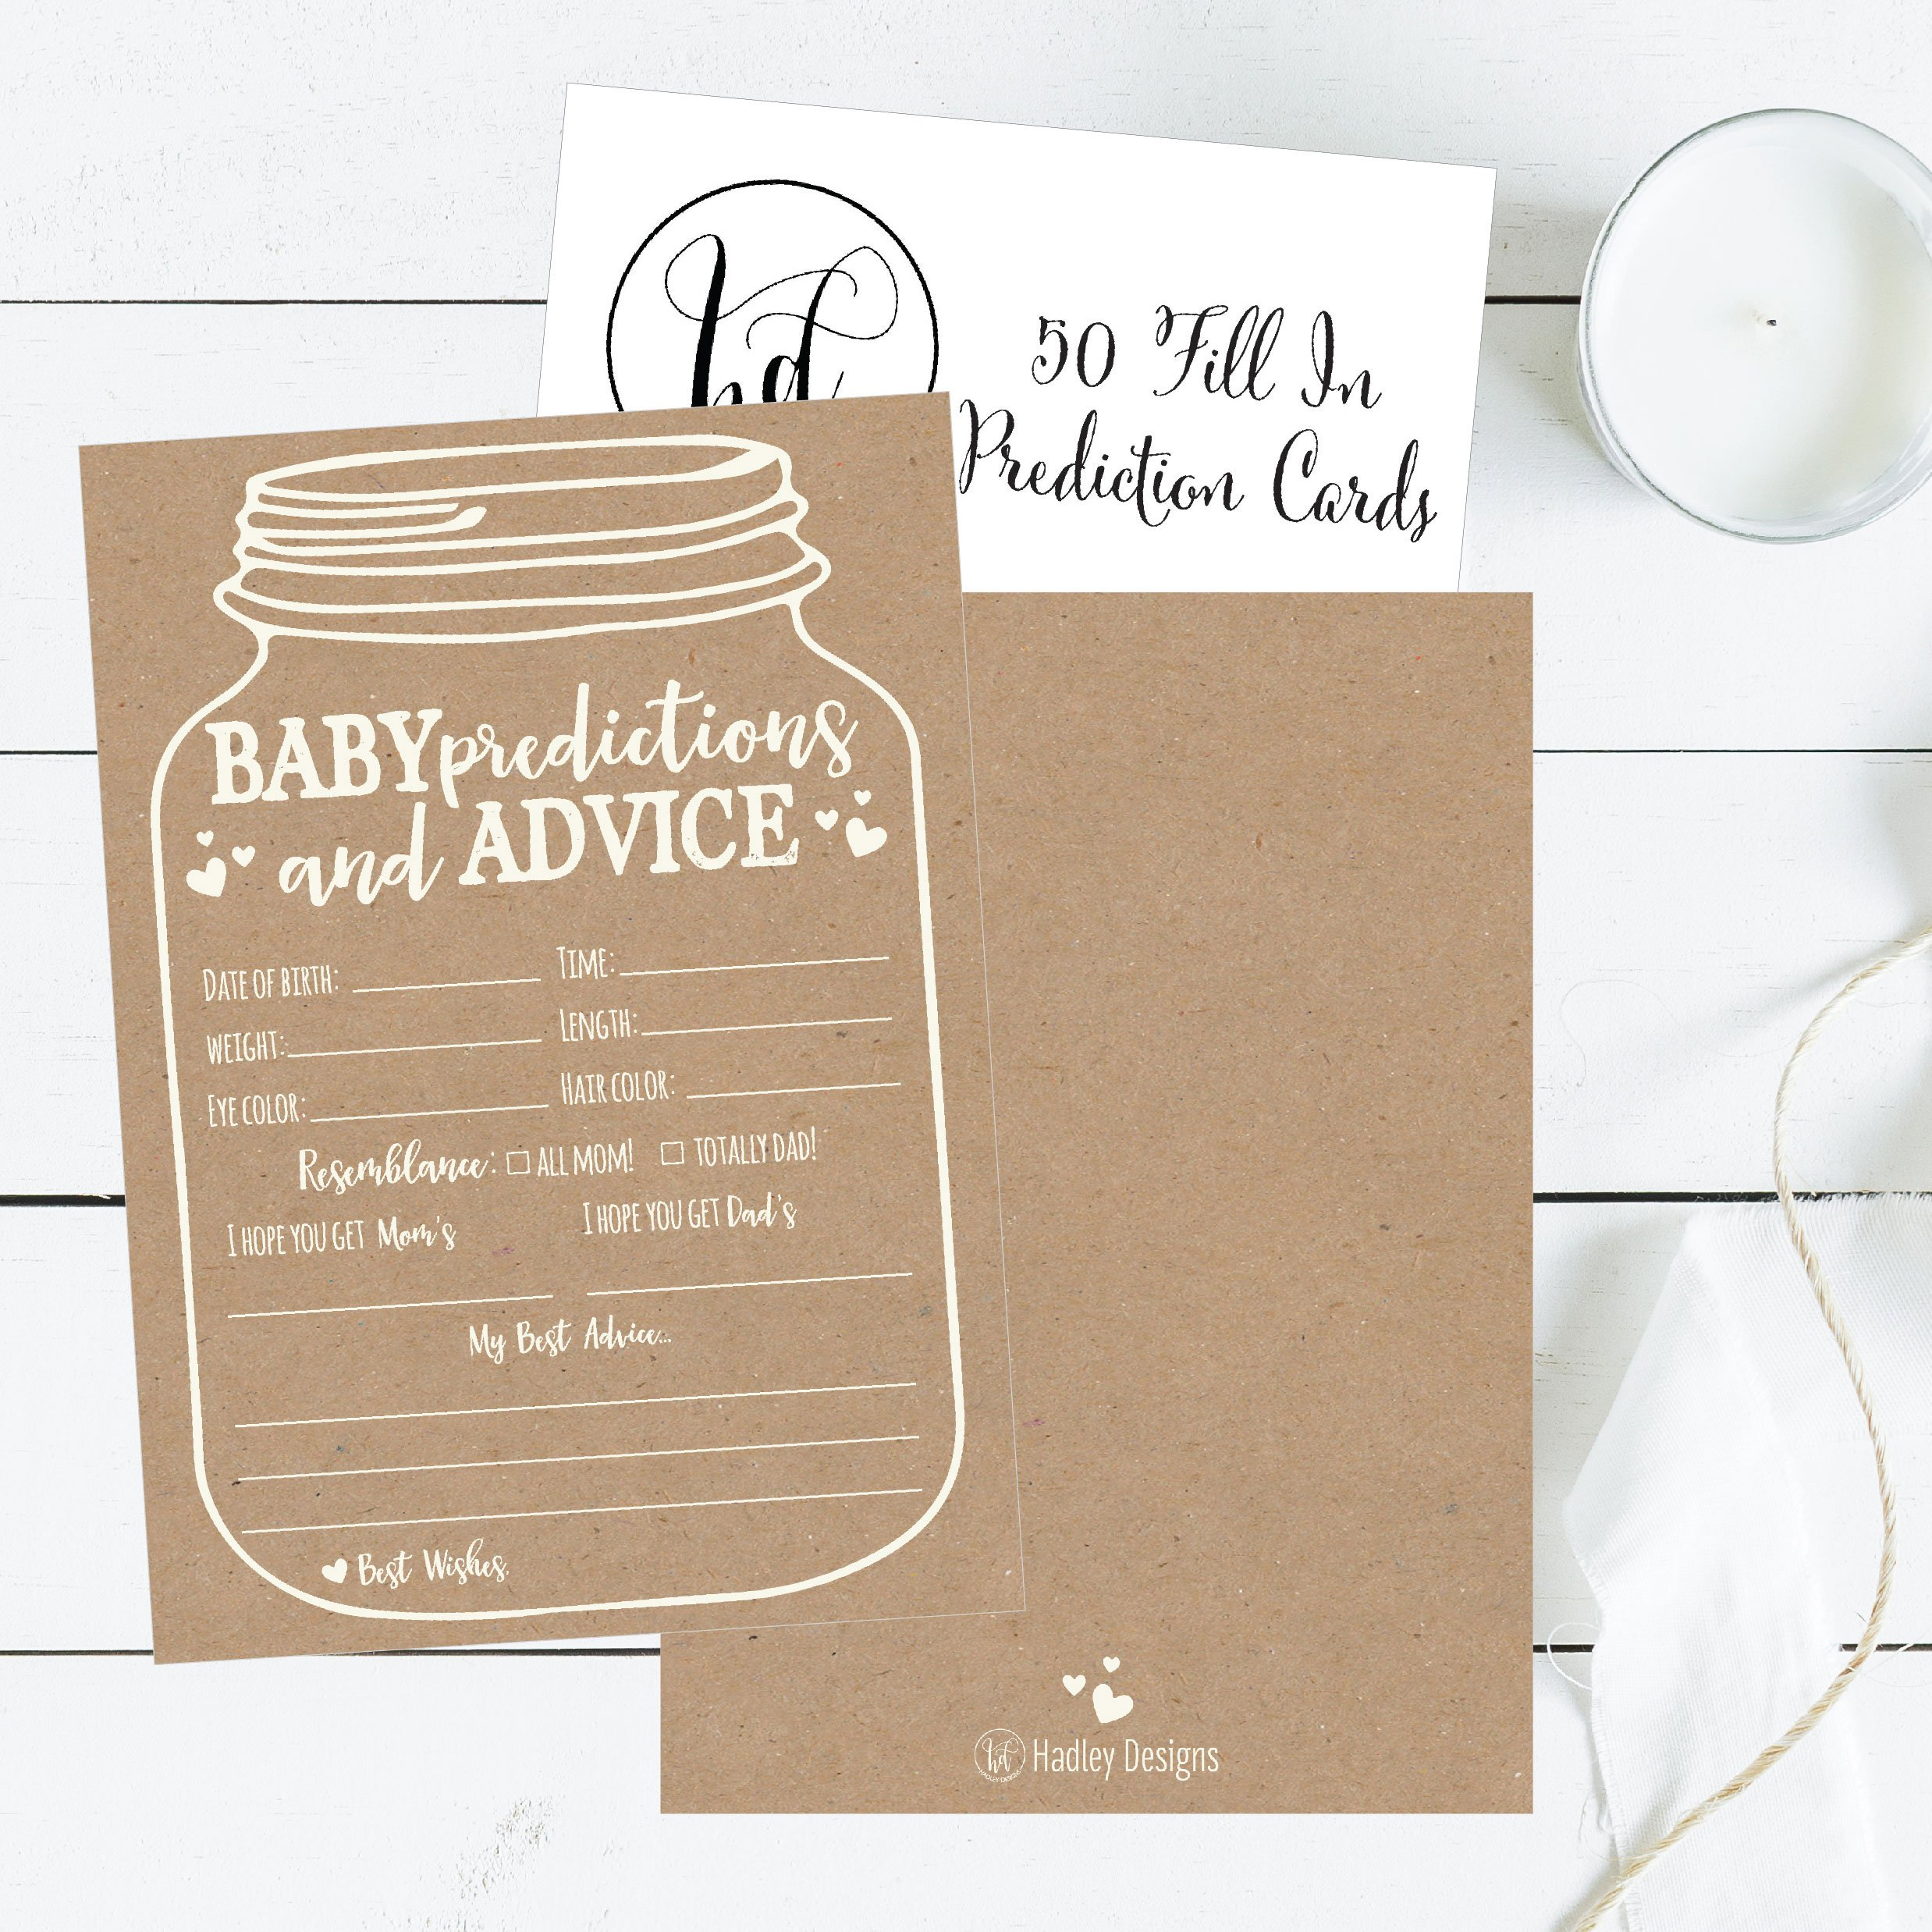 50 Mason Jar Advice and Prediction Cards for Baby Shower Game, New Mom & Dad Card or Mommy & Daddy To Be, For Girl or Boy Babies, New Parent Message Advice Book, Fun Gender Neutral Shower Party Favors by Hadley Designs (Image #5)